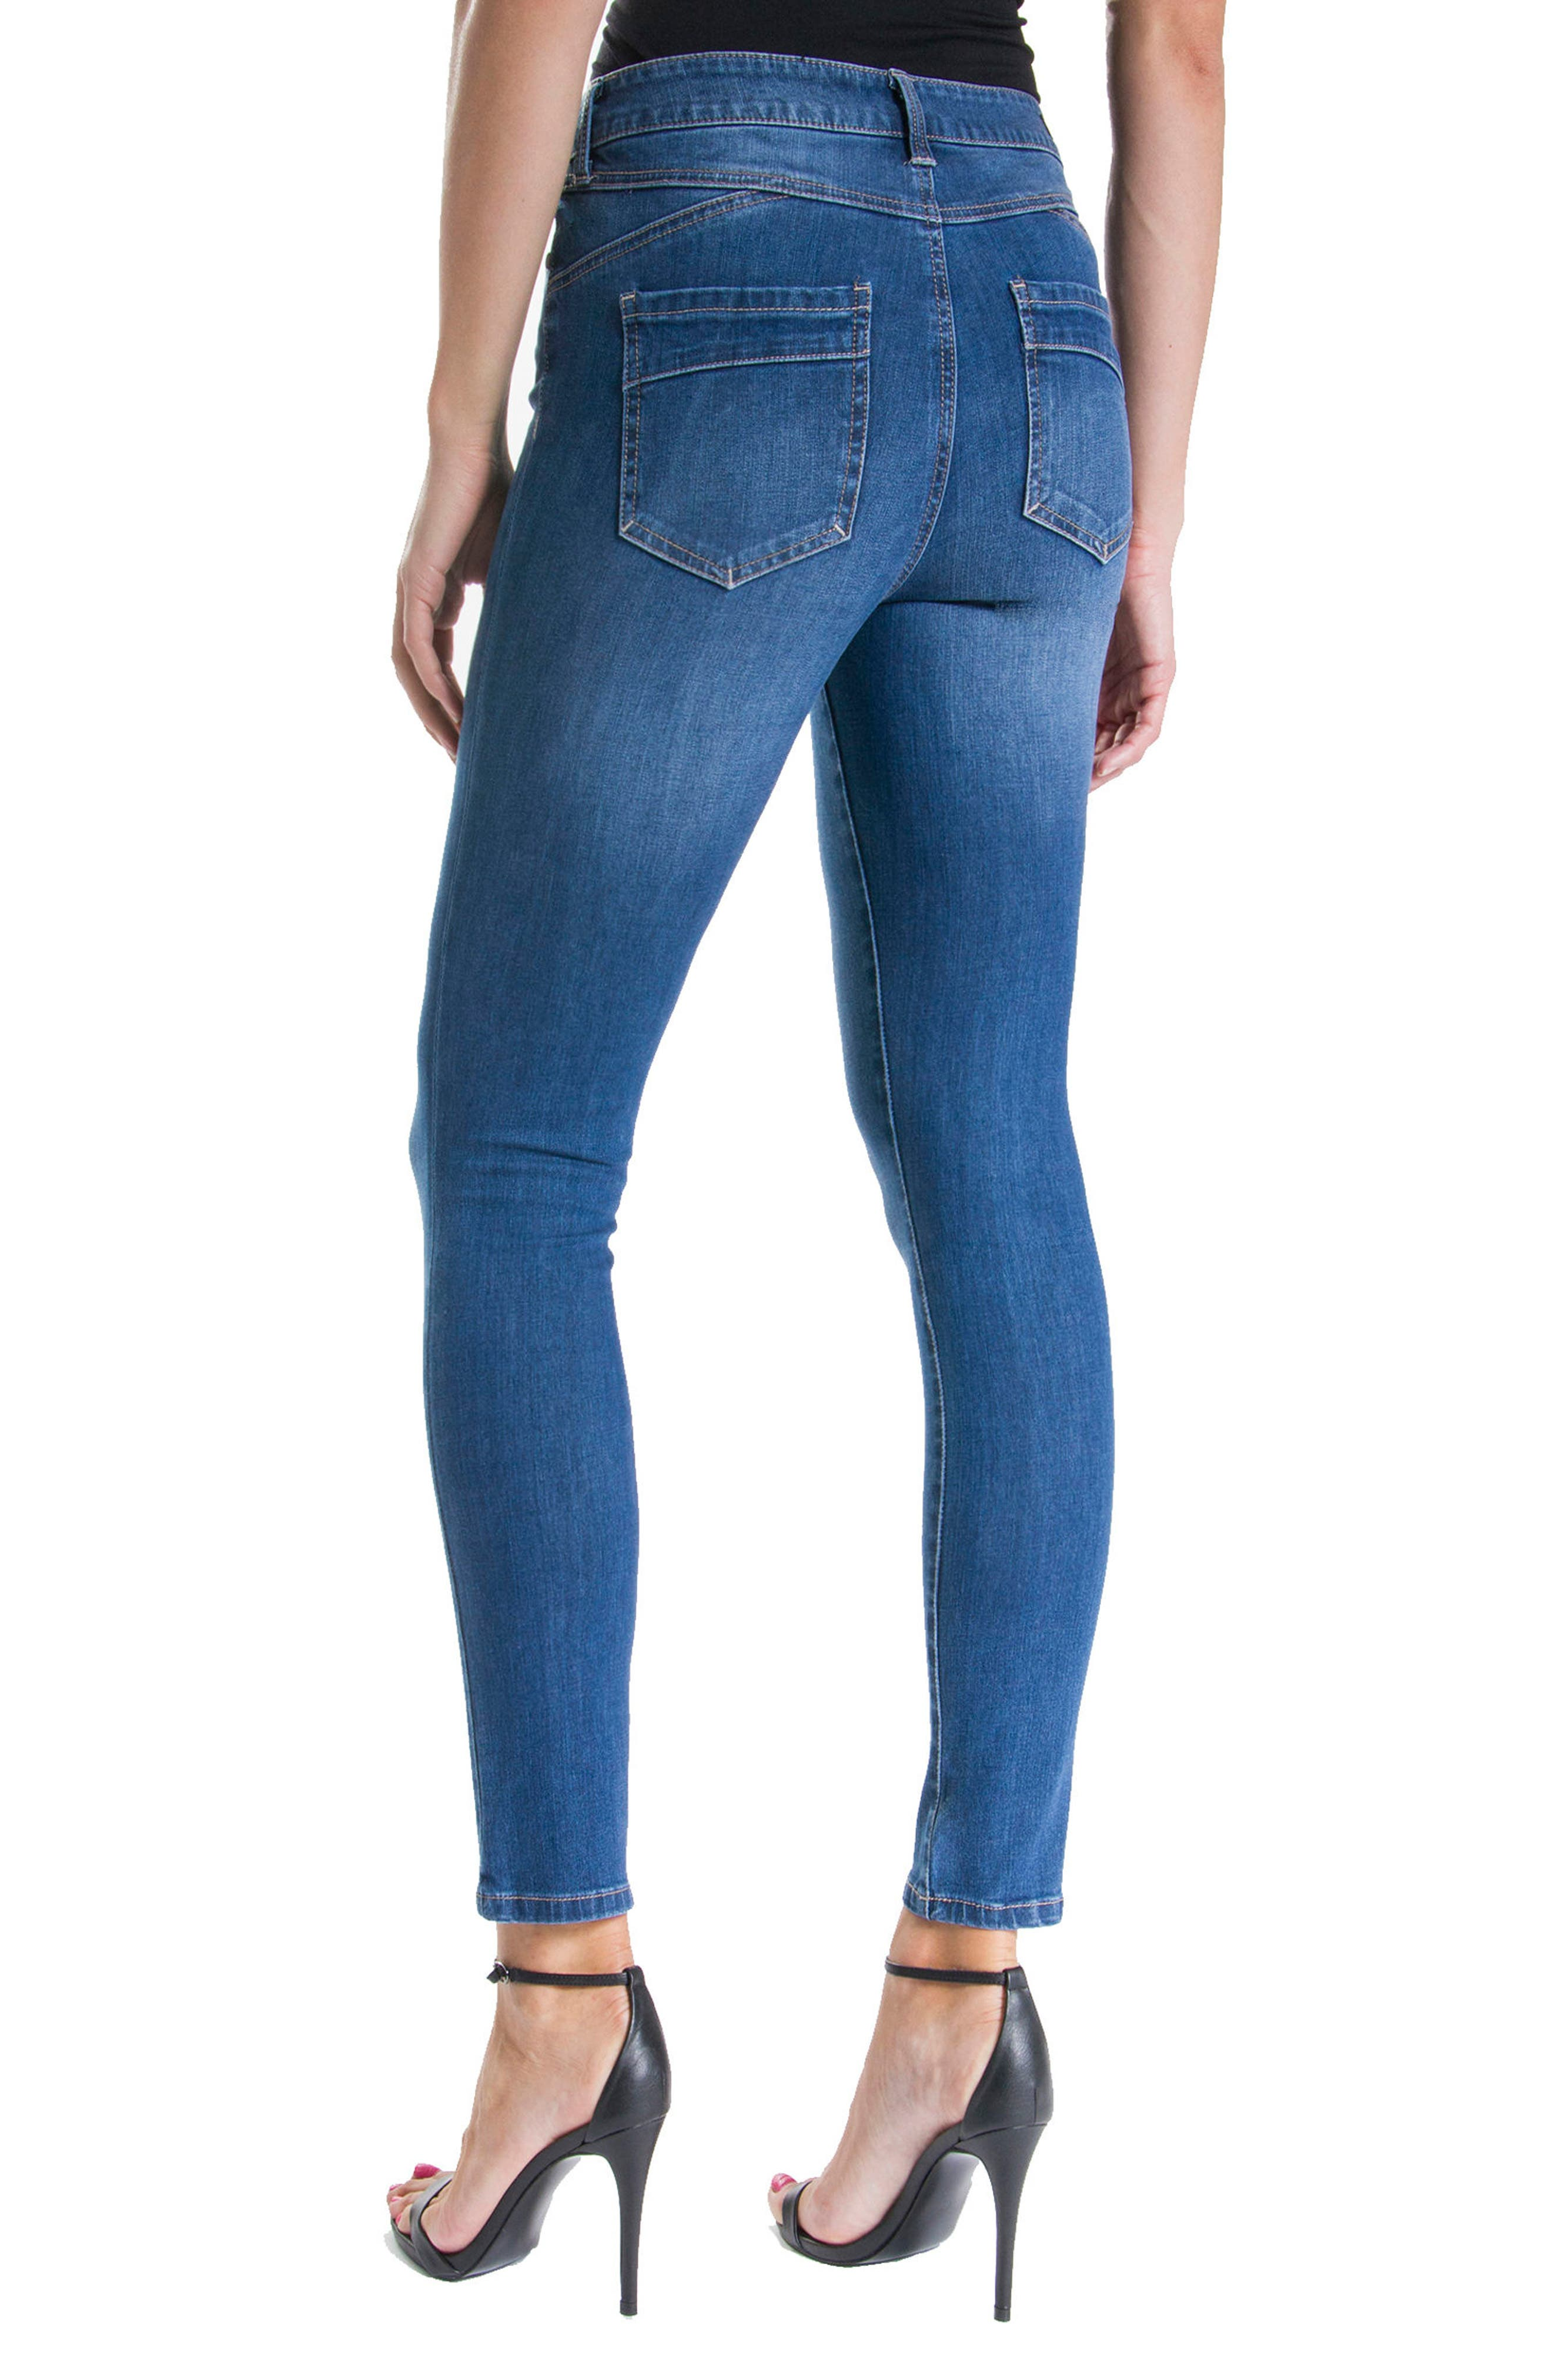 Jeans Company Piper Hugger Lift Sculpt Ankle Skinny Jeans,                             Alternate thumbnail 11, color,